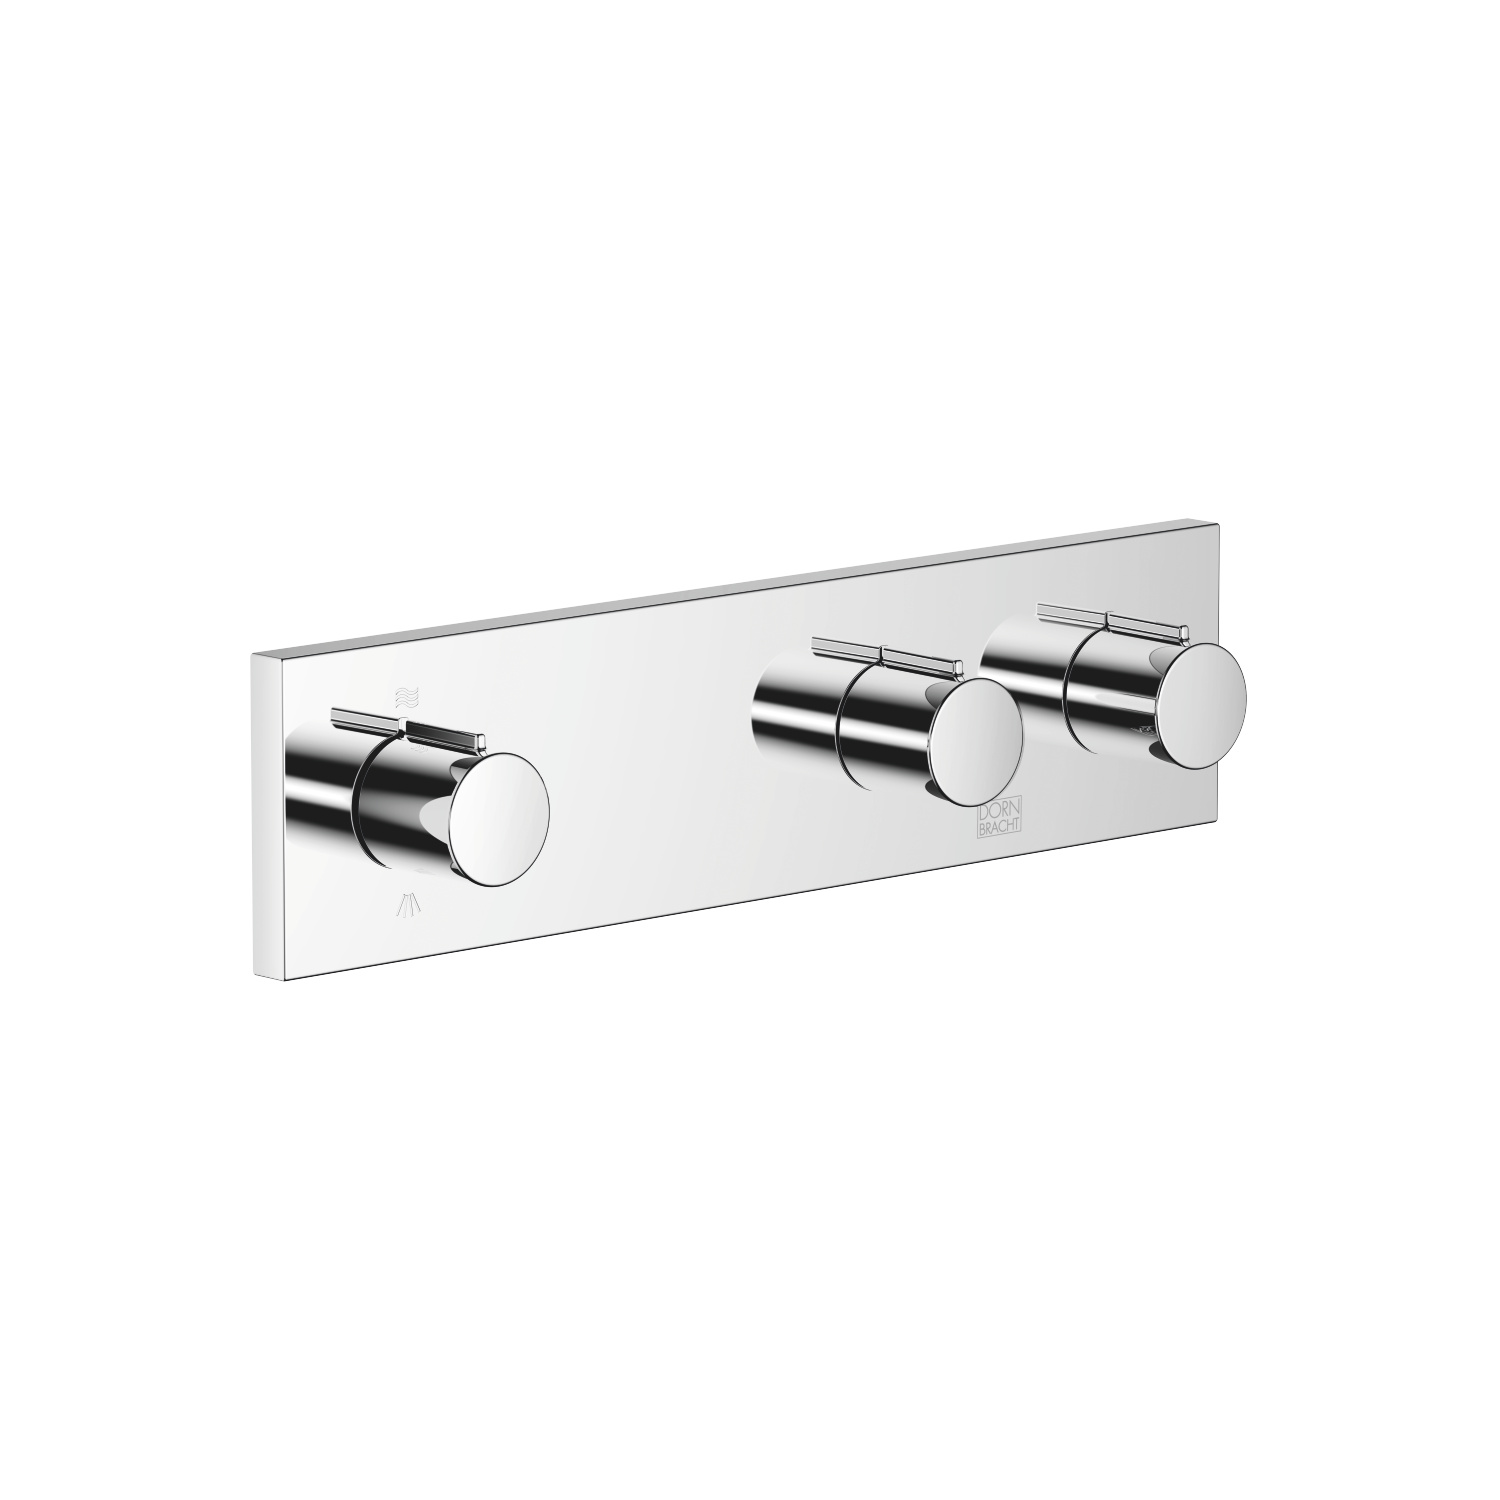 Wall valve with 2 valves with diverter for wall mounting - polished chrome